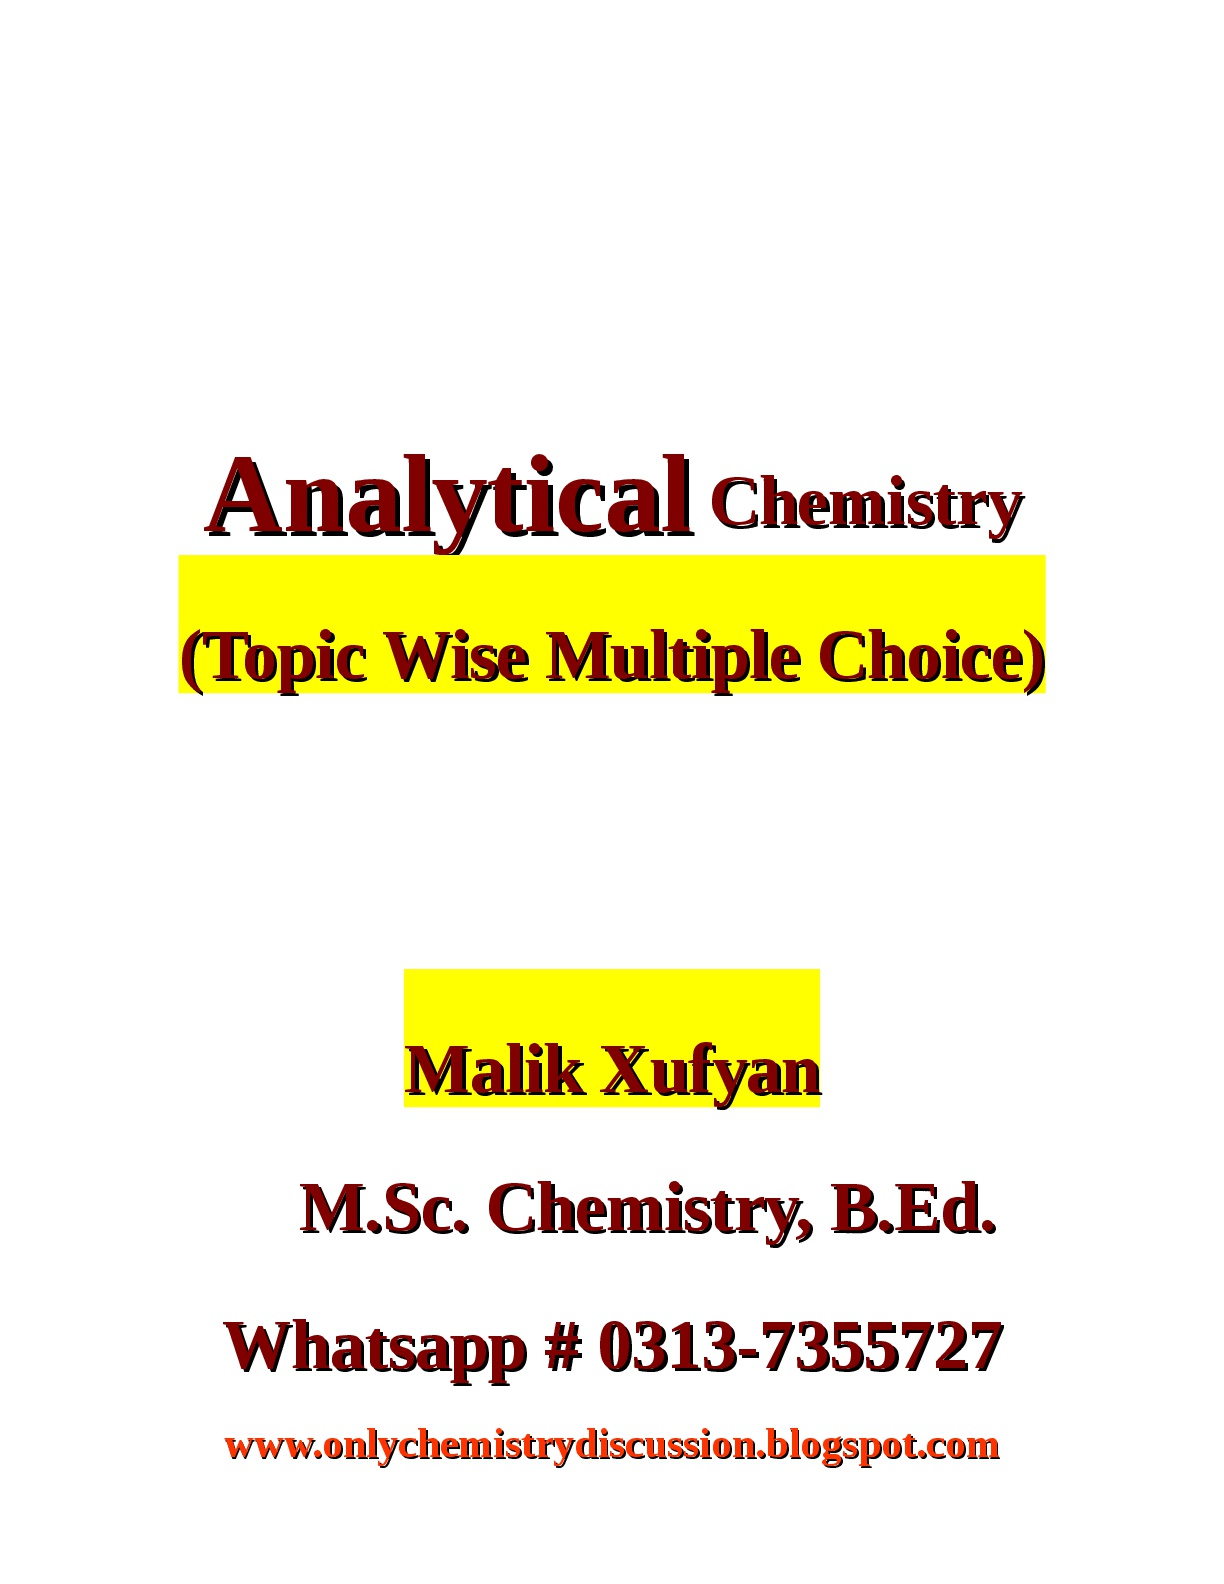 Malik Xufyan- Only Chemistry Discussion: Analytical